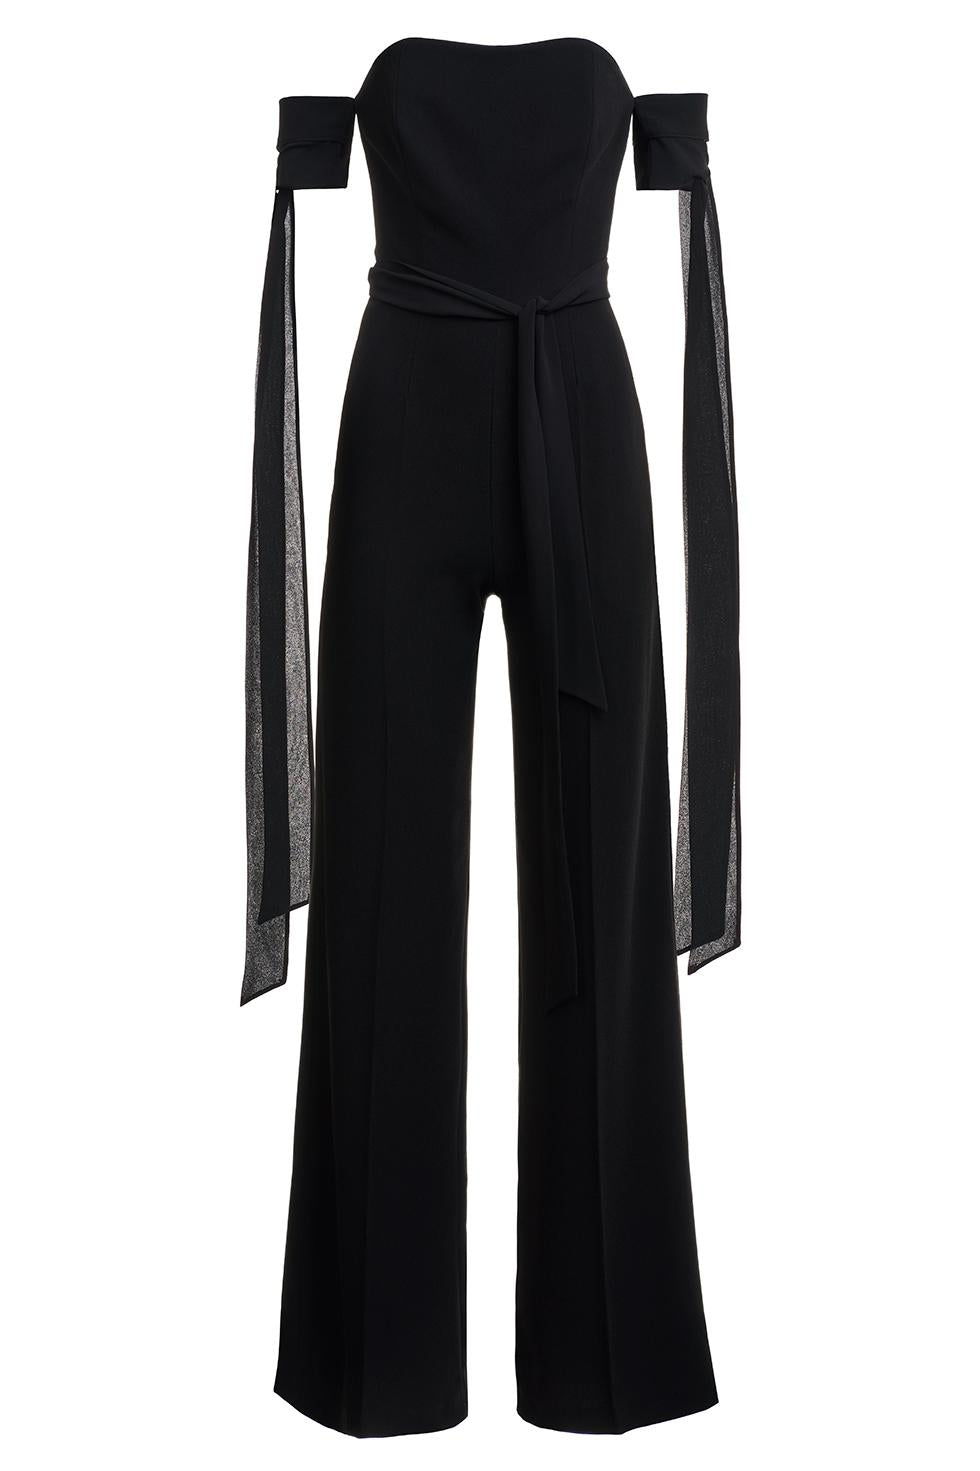 Katlyn Sleeveless Wide Leg Jumpsuit